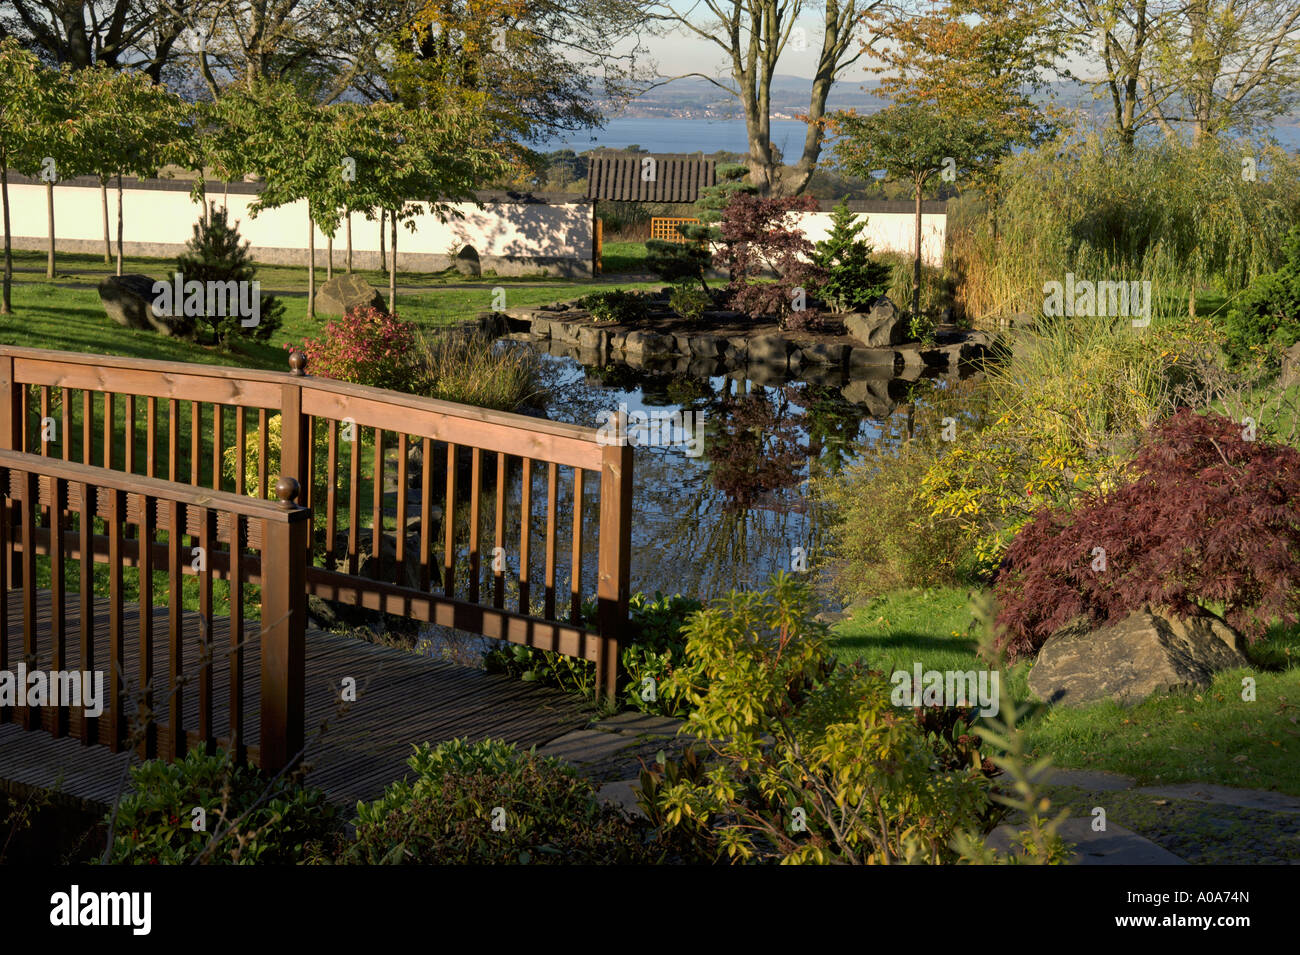 Japanese Friendship Garden Stock Photos & Japanese Friendship Garden ...